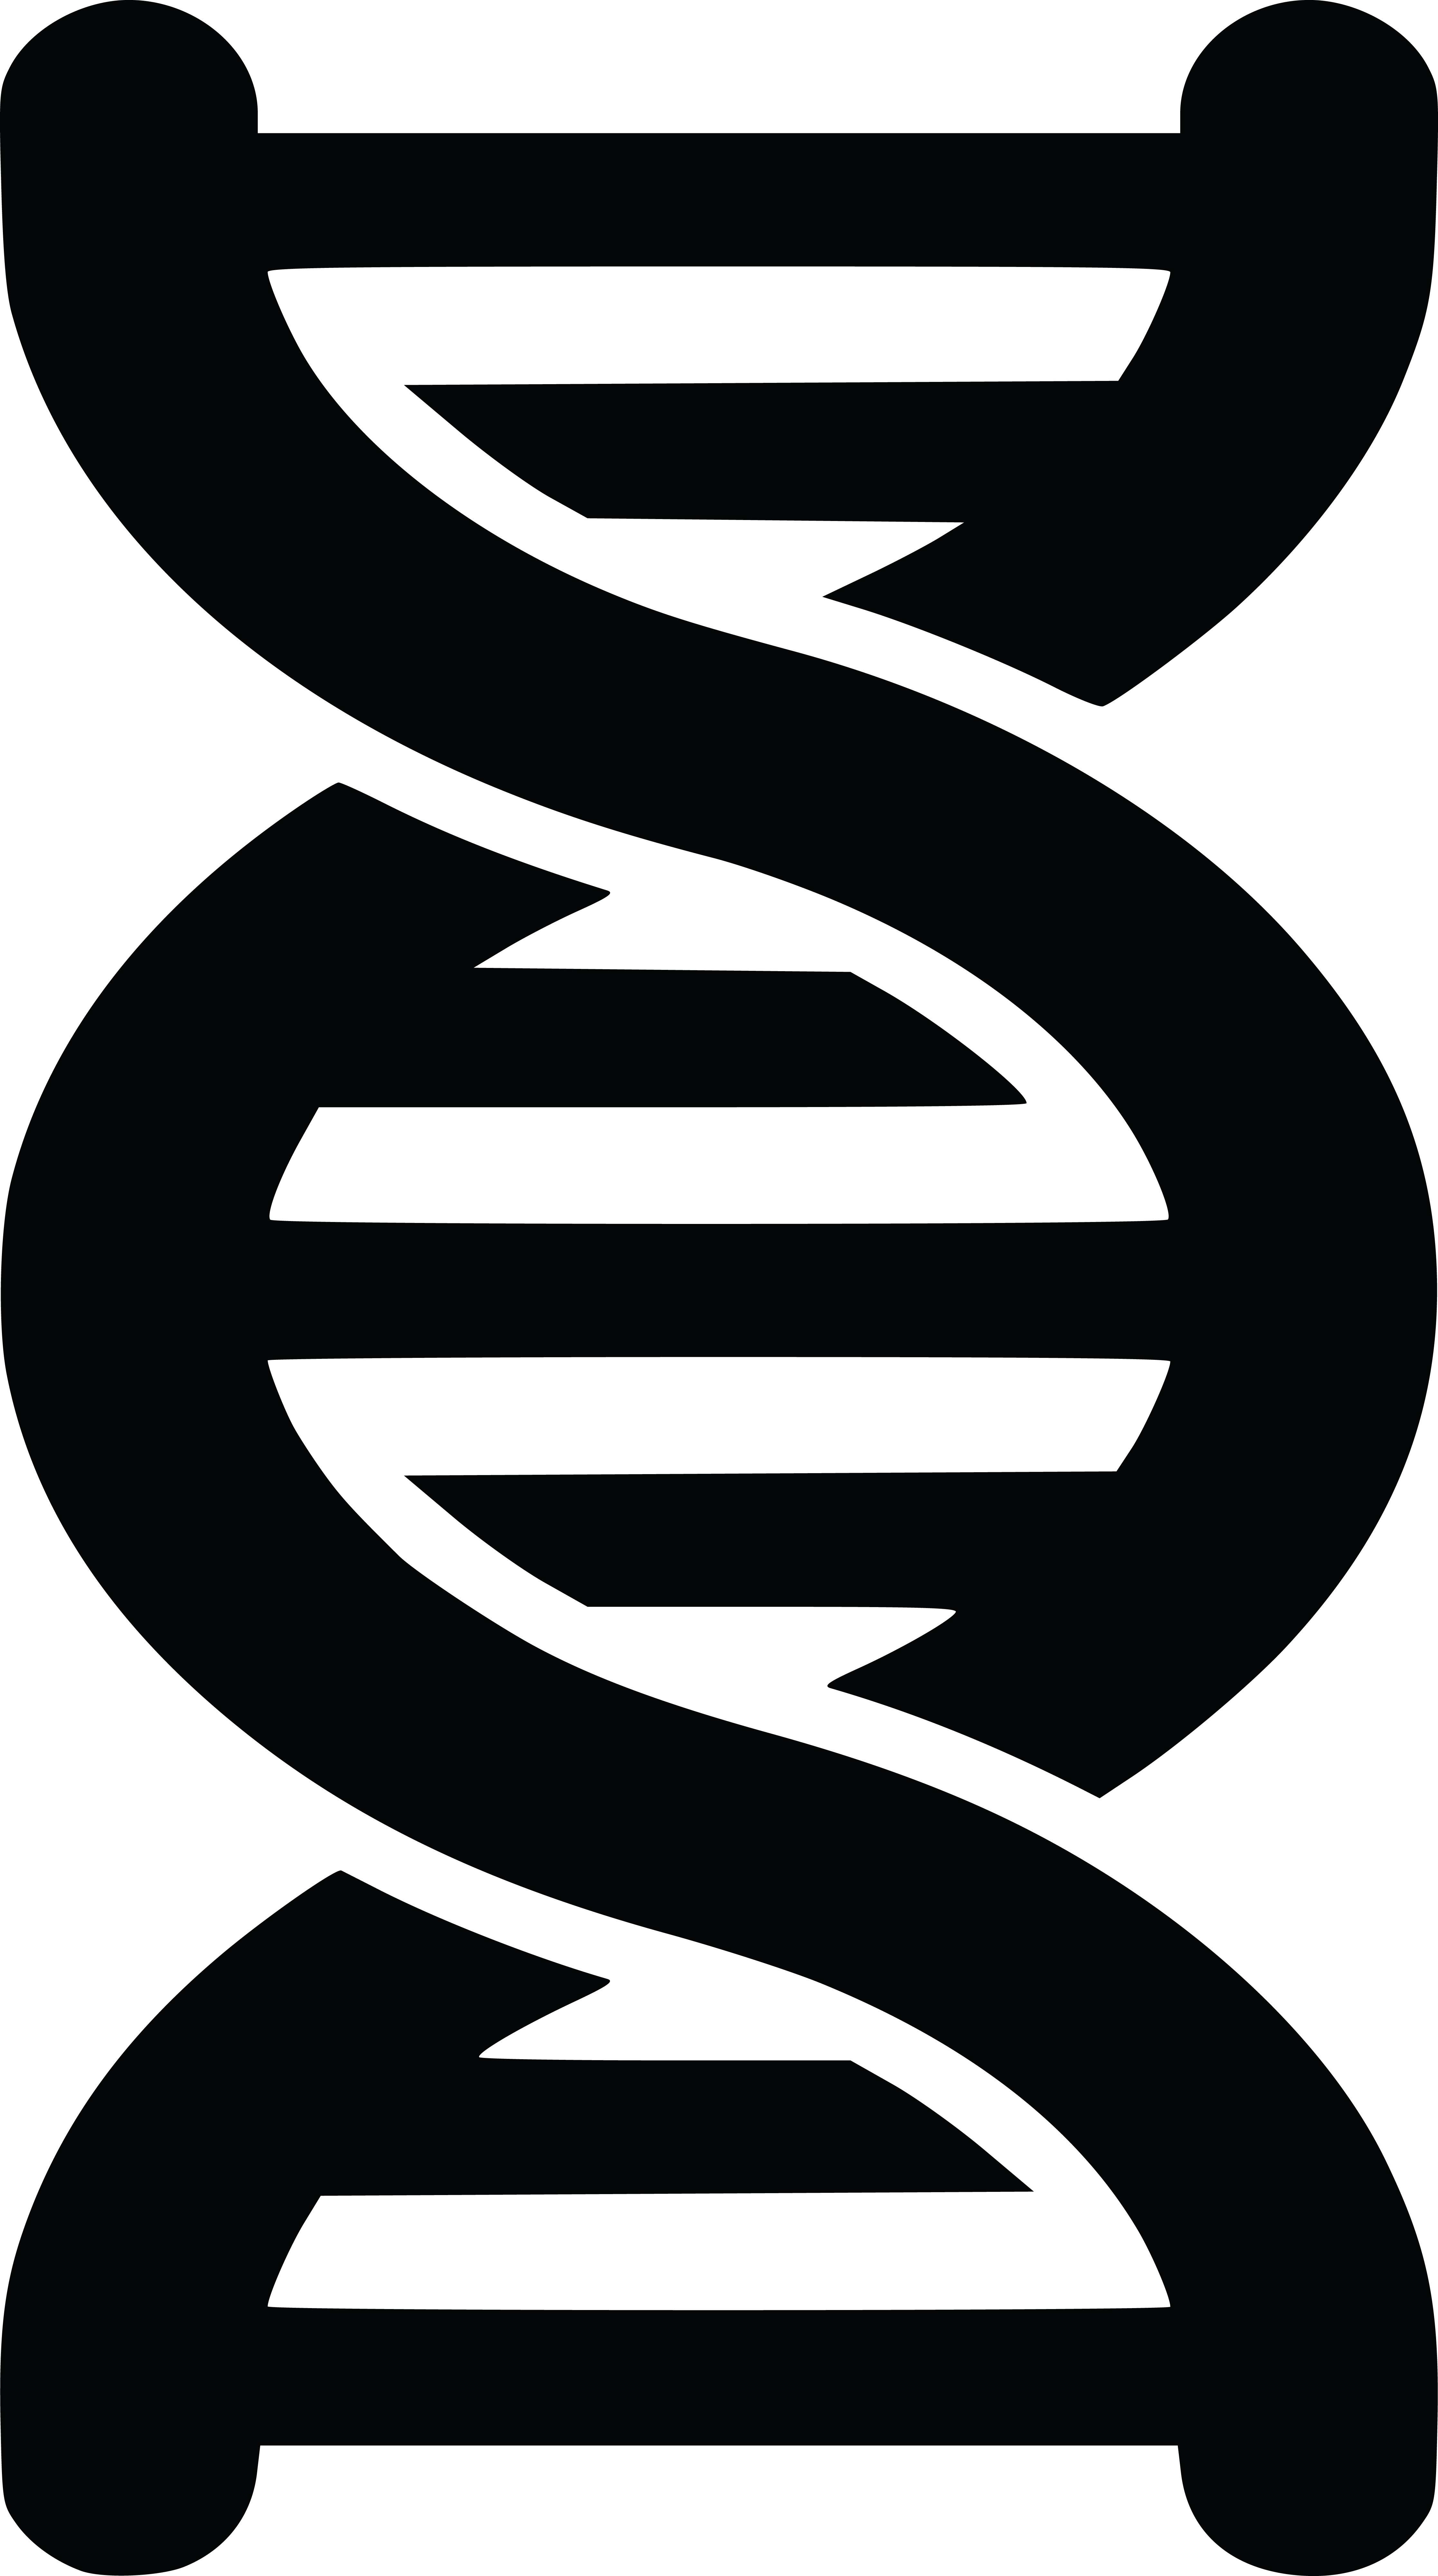 Free Clipart of a black and white dna strand double helix.